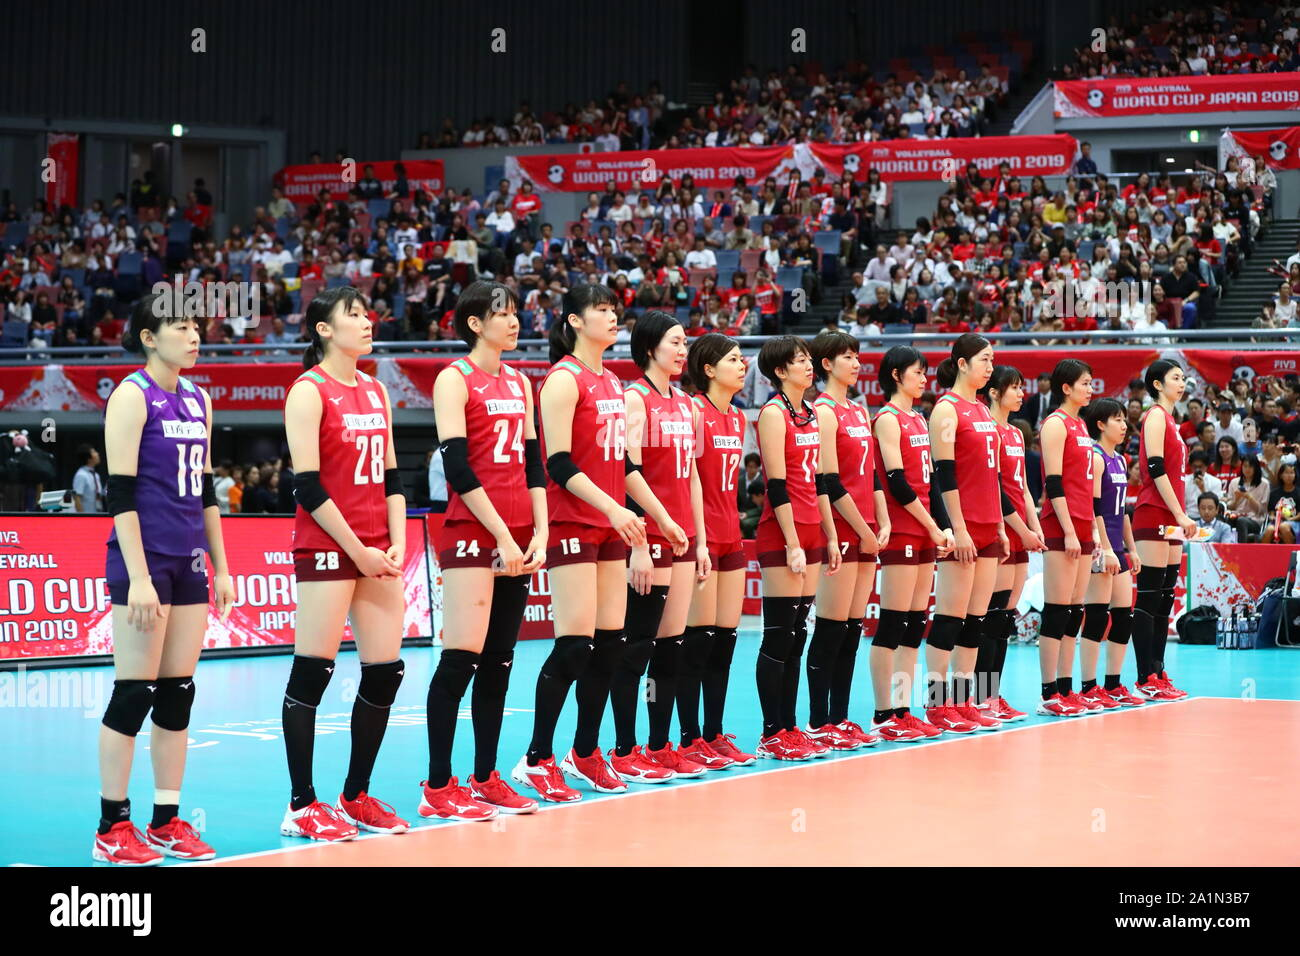 Page 5 Japan Volleyball Team Group Jpn High Resolution Stock Photography And Images Alamy